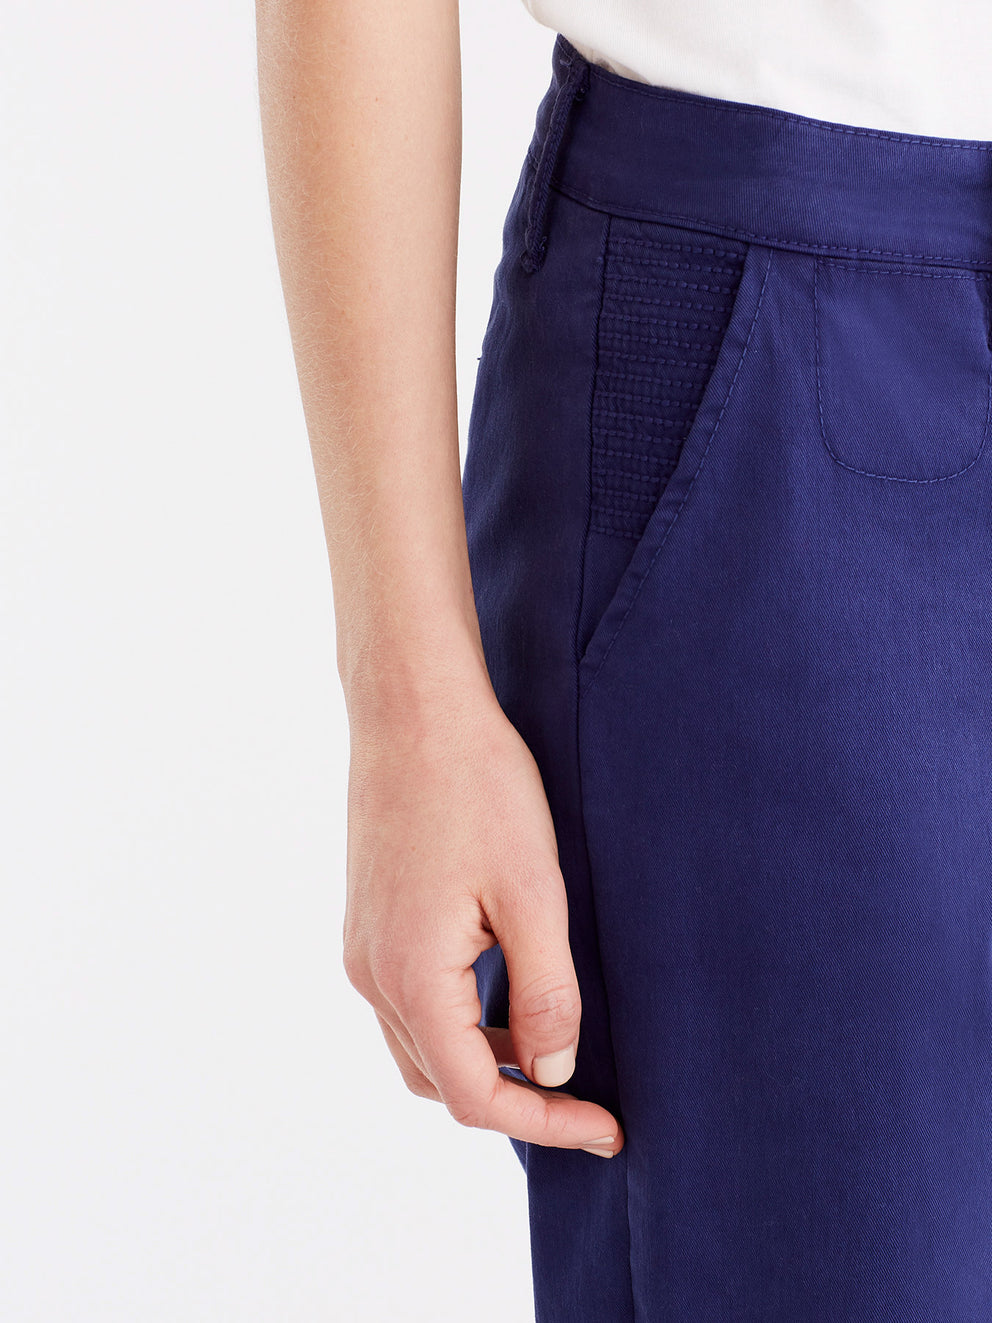 The Jones New York Classic Cropped Chino in color Navy - Image Position 2